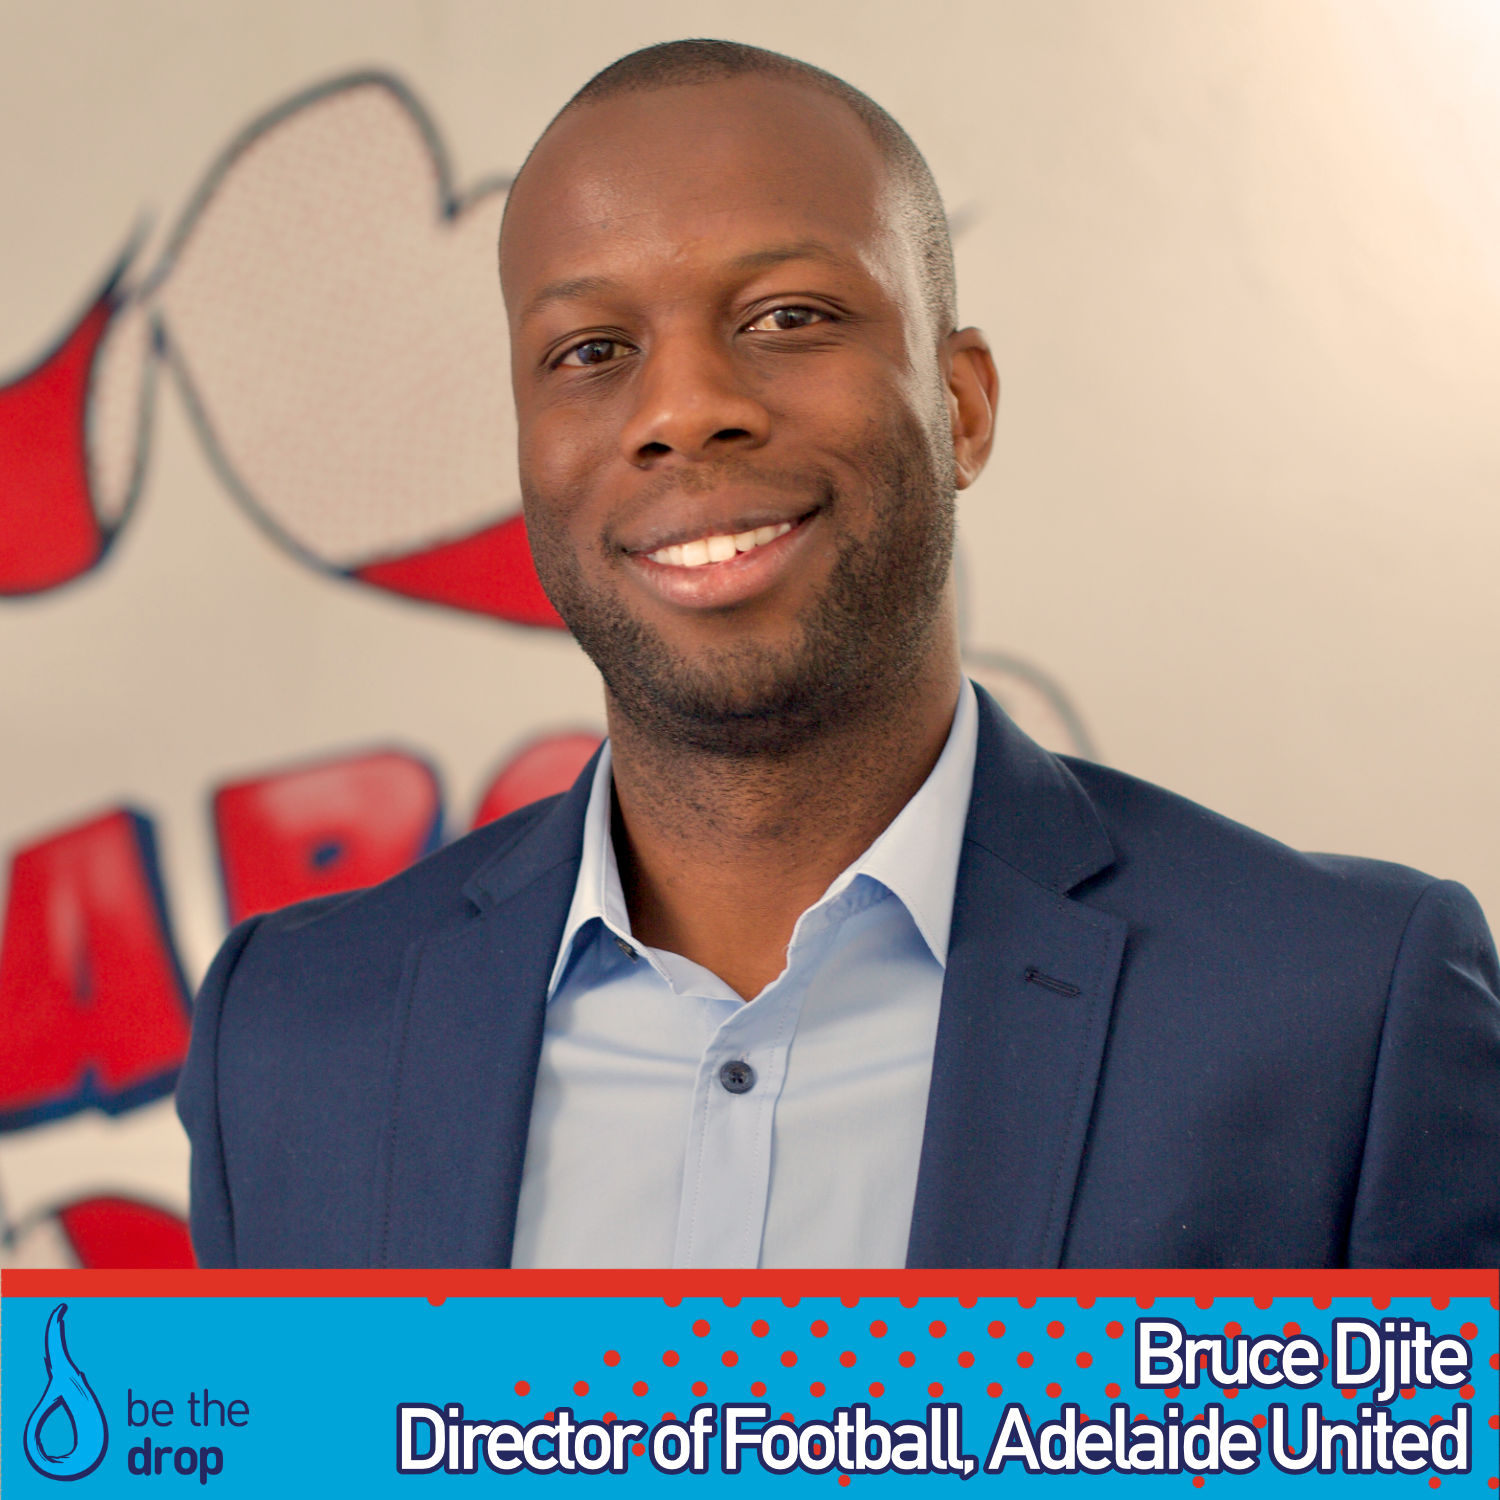 Teamwork: From Sport To Business With Bruce Djite [Podcast]